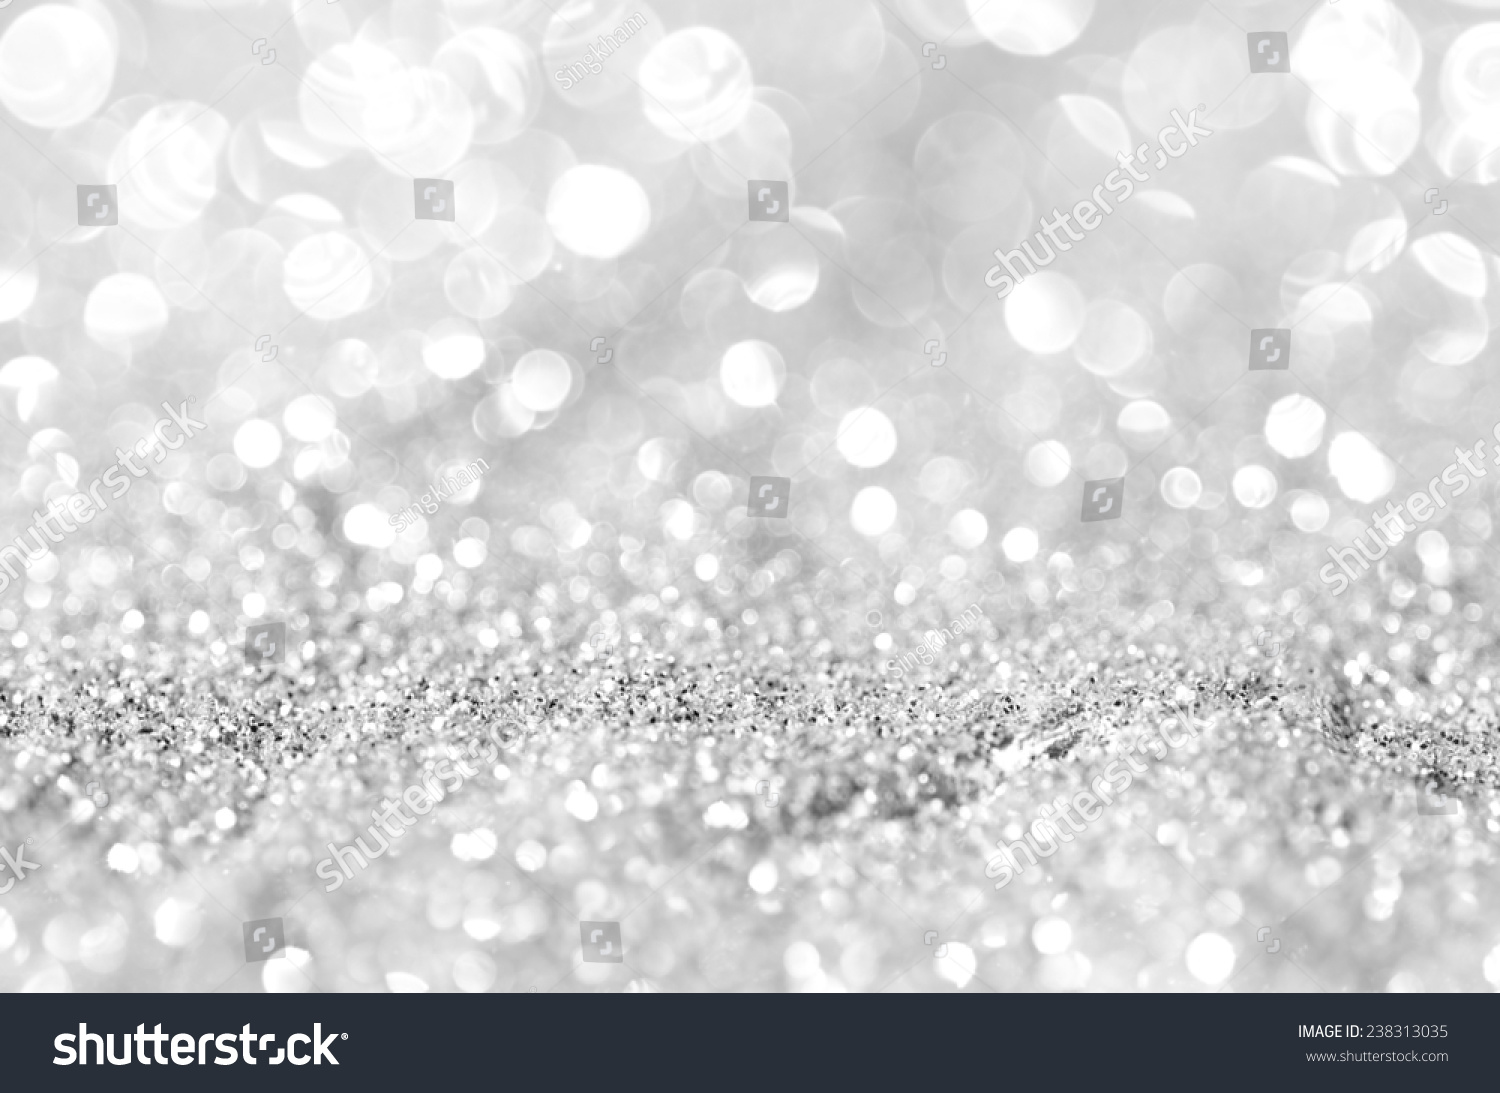 Bokeh Abstract Background Wallpaper Diamond For Wedding Or New Year Design